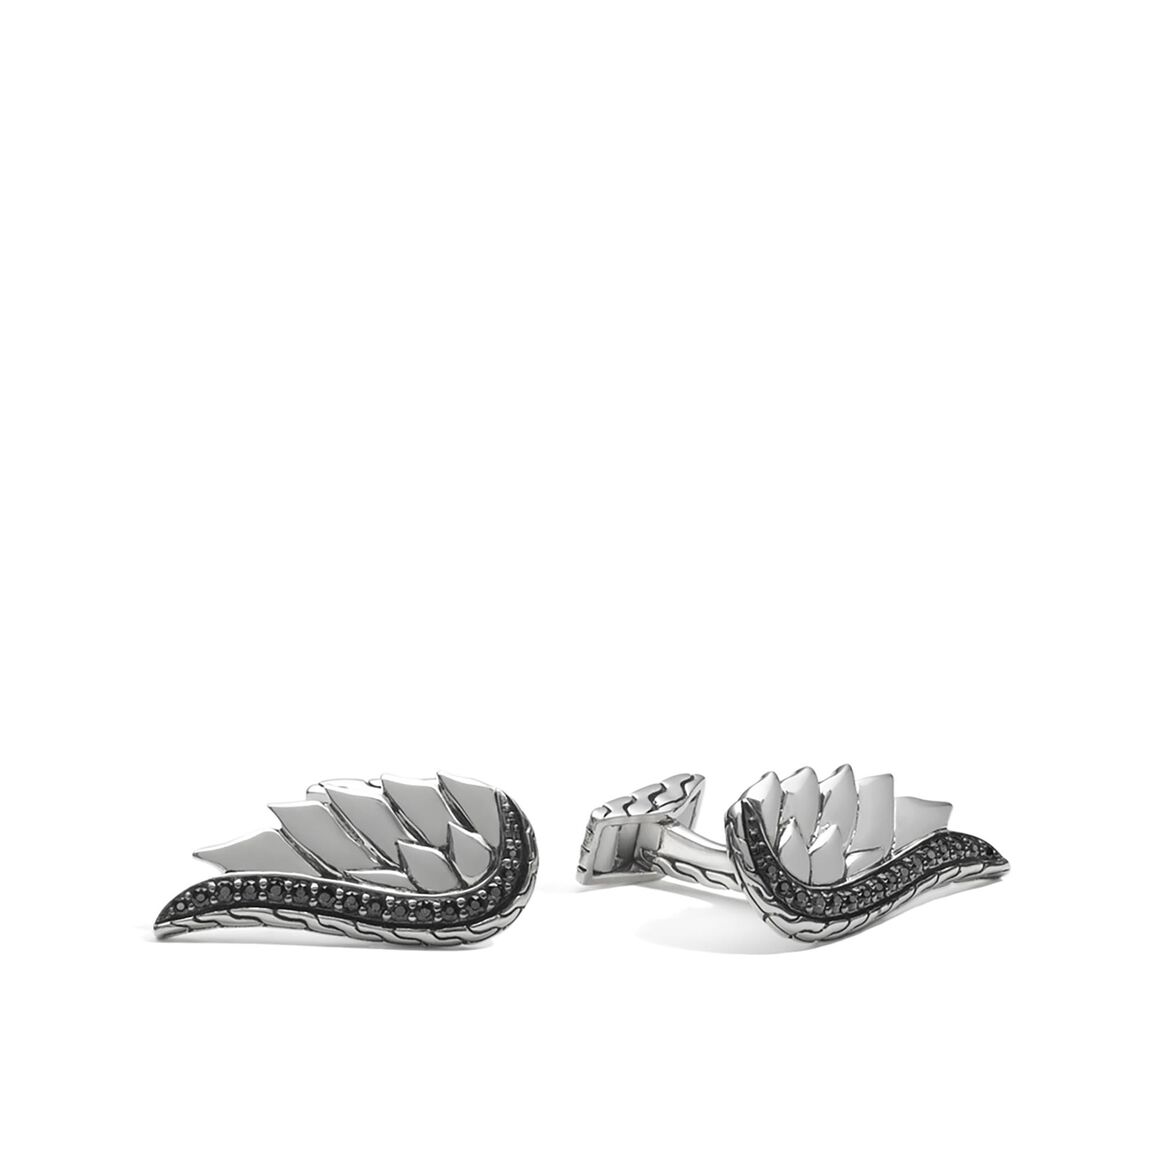 Legends Eagle Wing Cufflinks in Silver with Gemstone